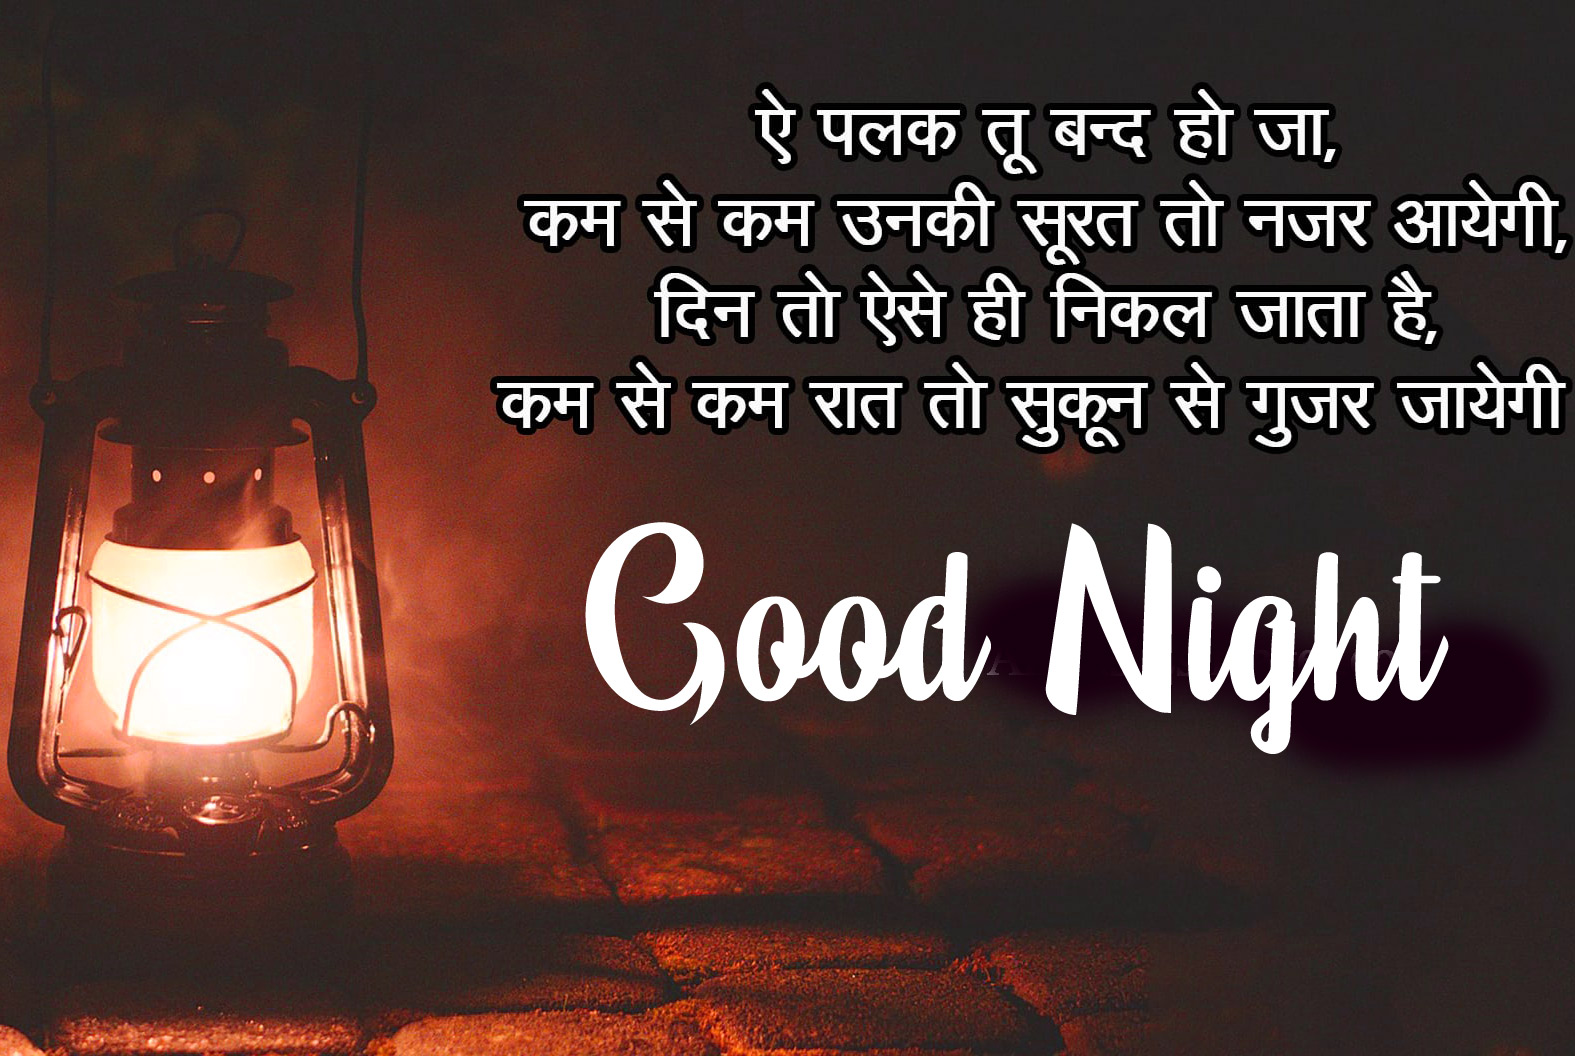 Good Night Images With Hindi Shayari Pics for Whatsapp